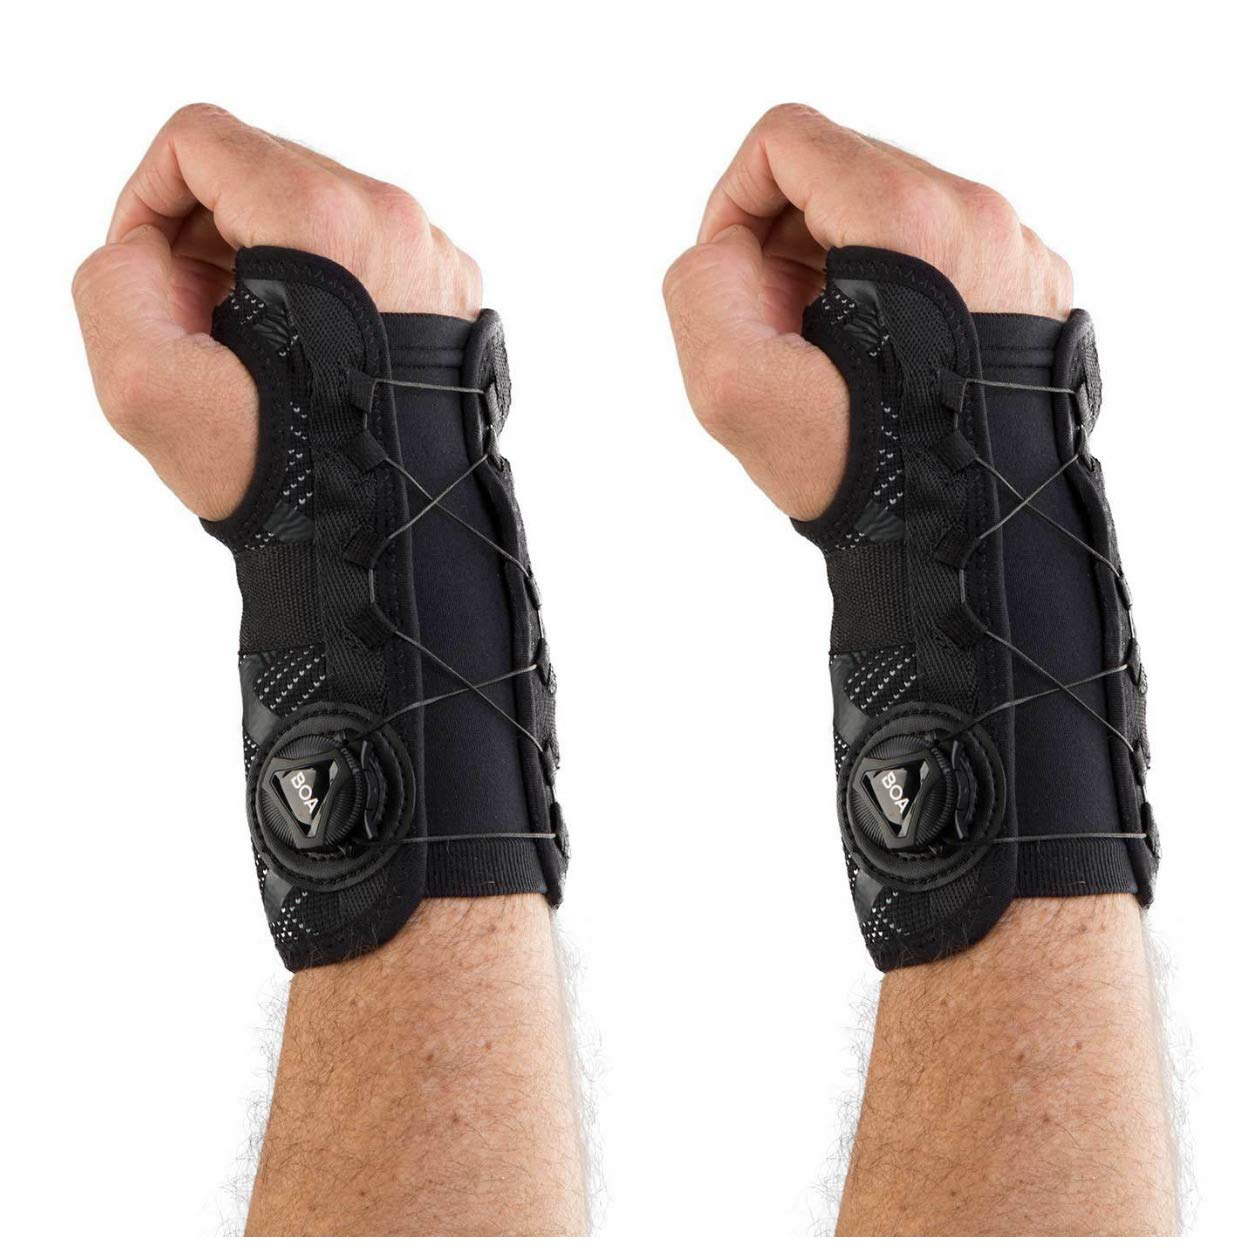 DonJoy Performance Bionic Reel-Adjust Wrist Braces (Right and Left Pair) - Medium/Large - Value Bundle